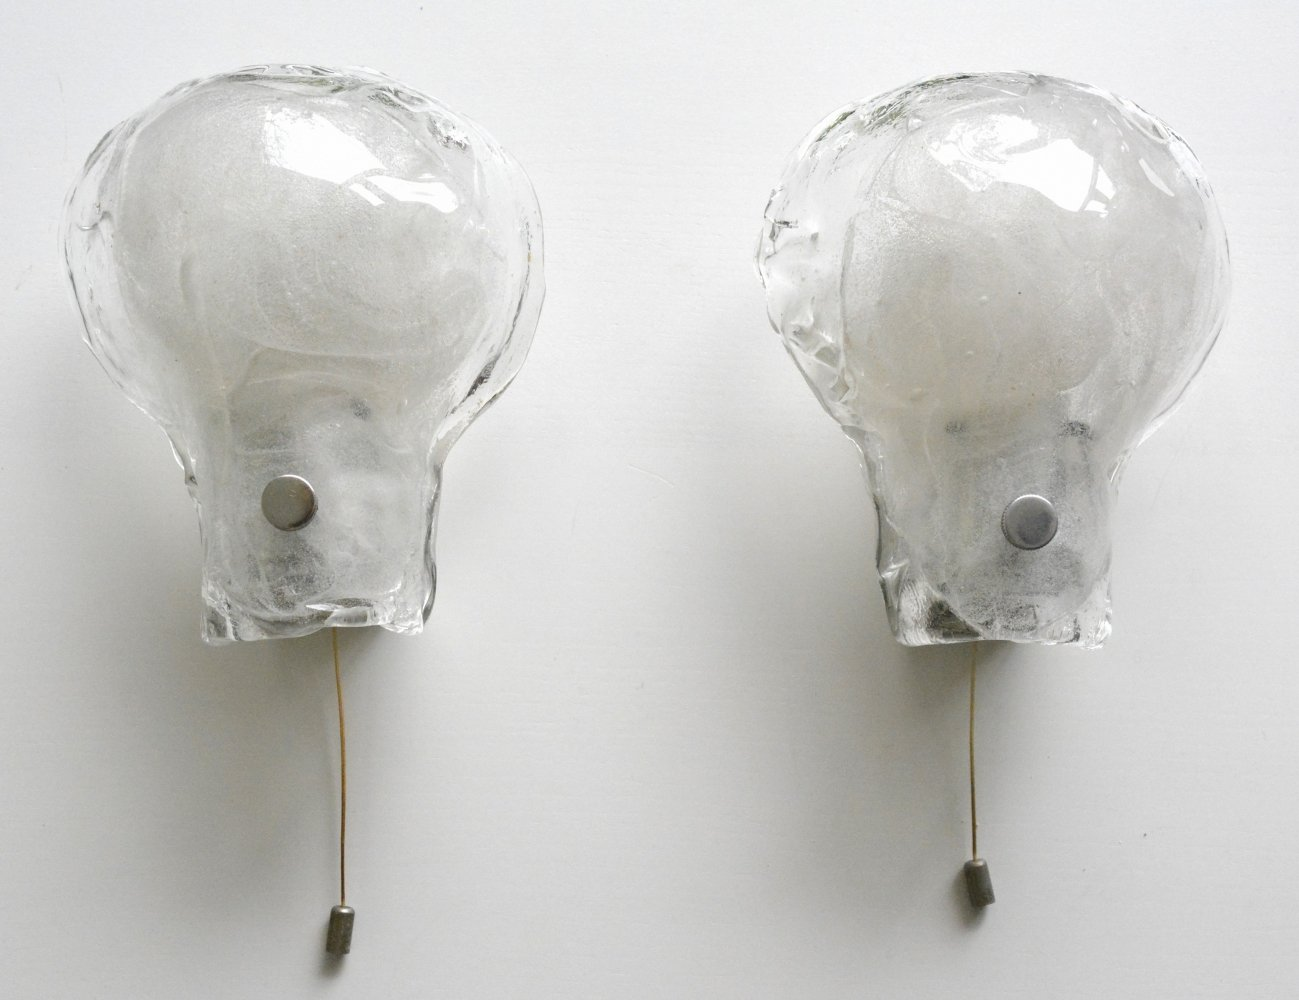 Pair of wall lamps by JT Kalmar for Franken KG Germany, 1960s